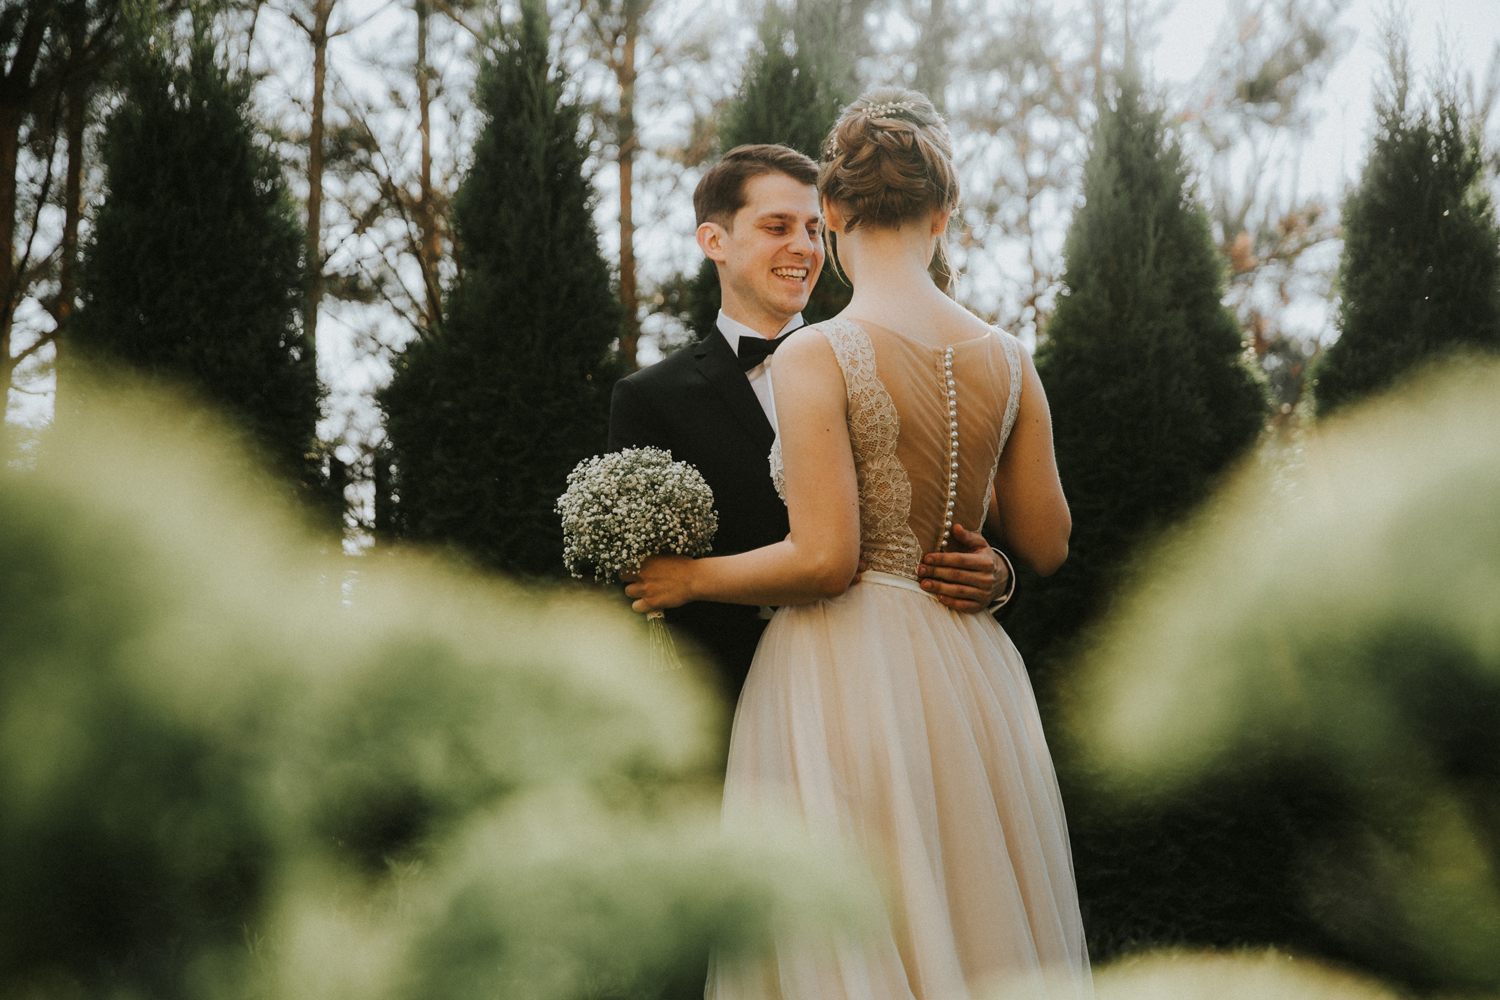 weddingphotograher_klaudia_rafal_nationalpark_096.jpg